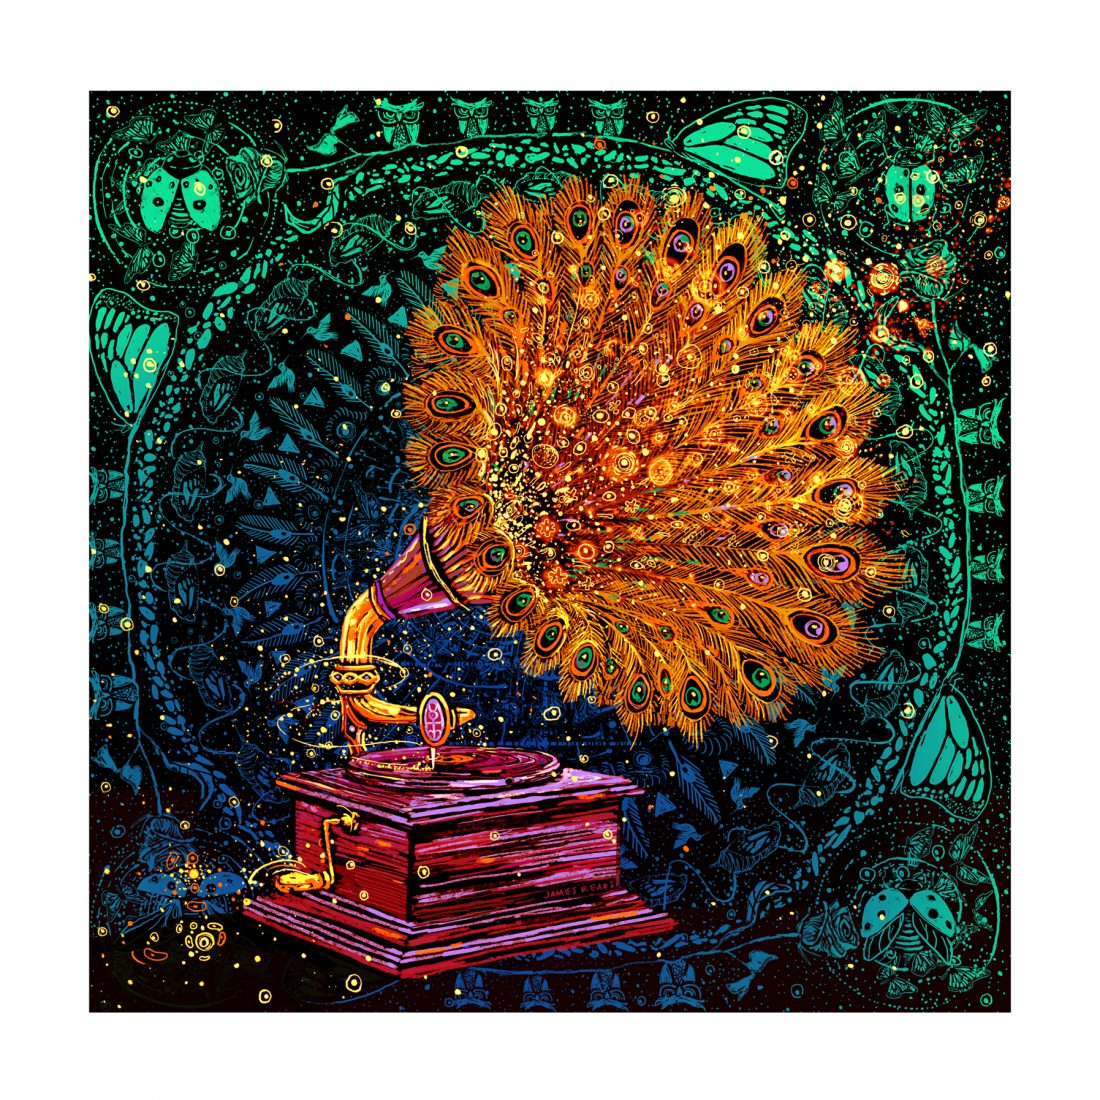 """The Goldfeather Player"" by James R Eads.  18"" x 18"" Giclee.  Ed of 250 S/N.  $50"